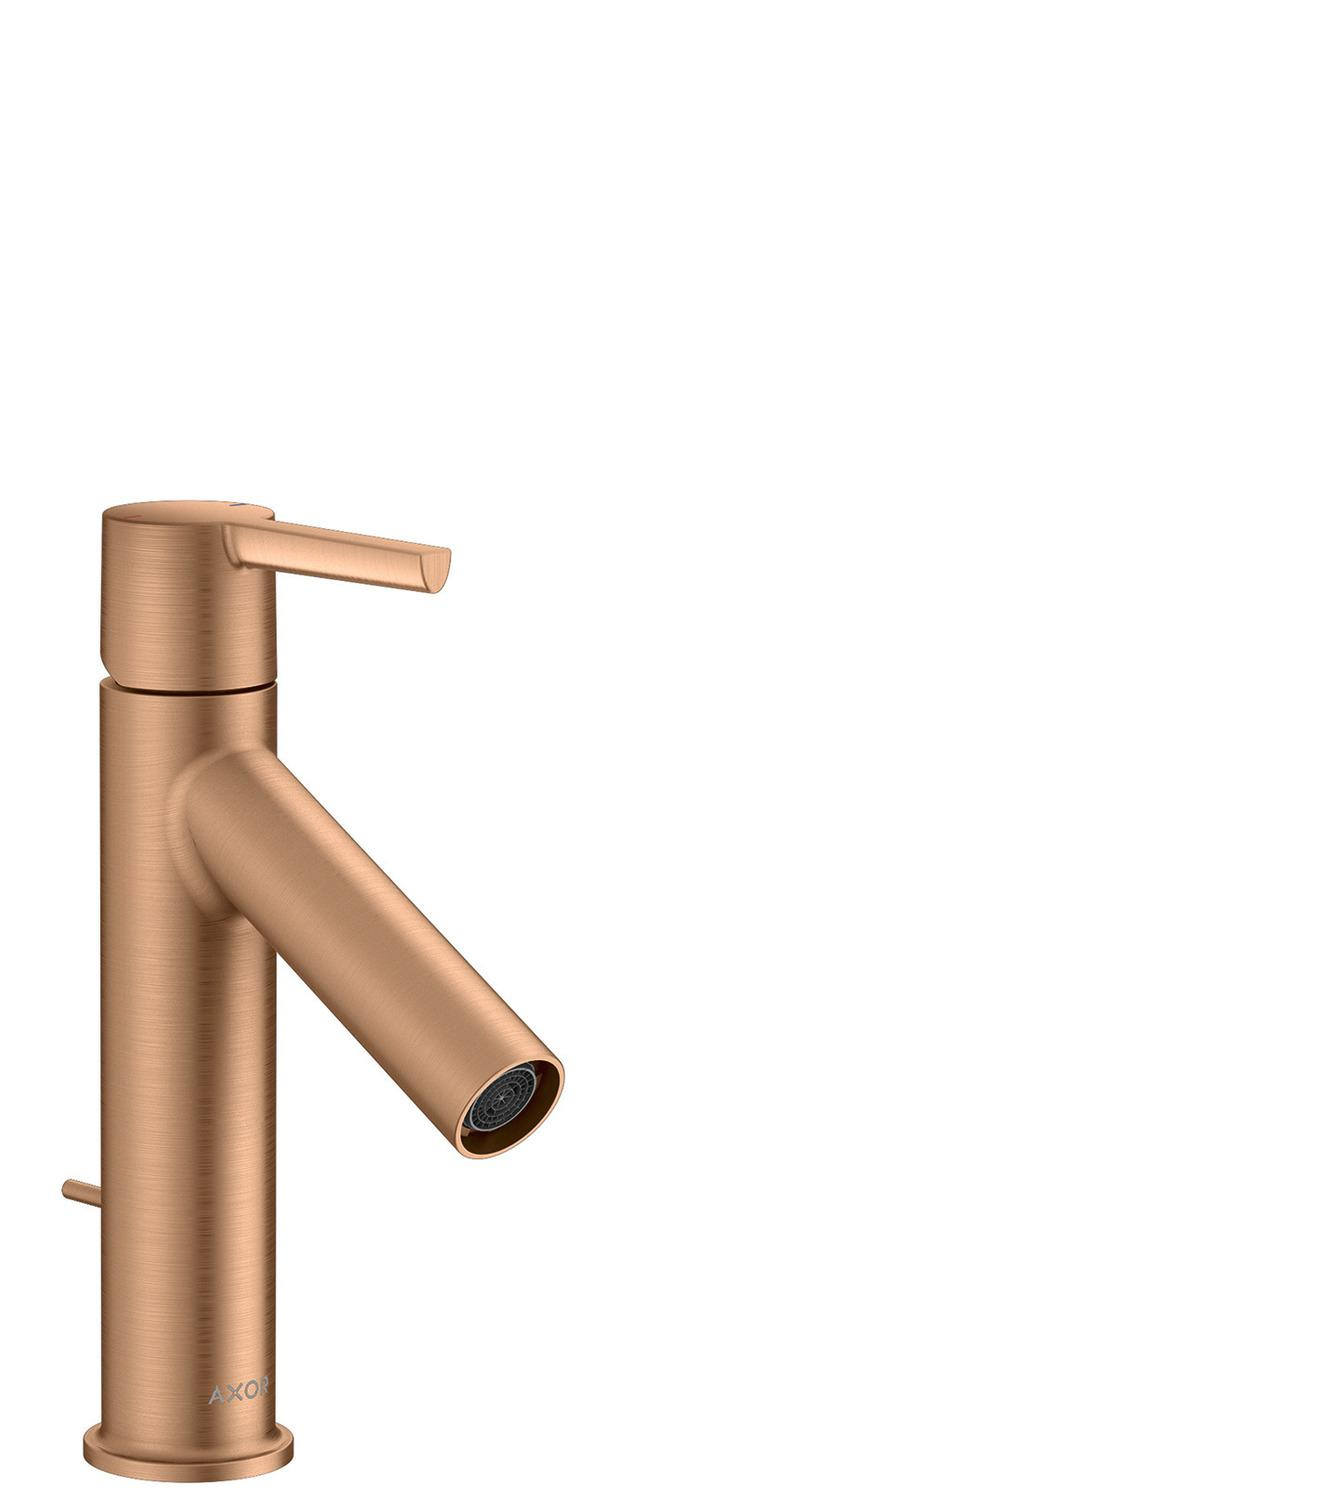 Brushed Bronze Single lever basin mixer 100 with lever handle and pop-up waste set